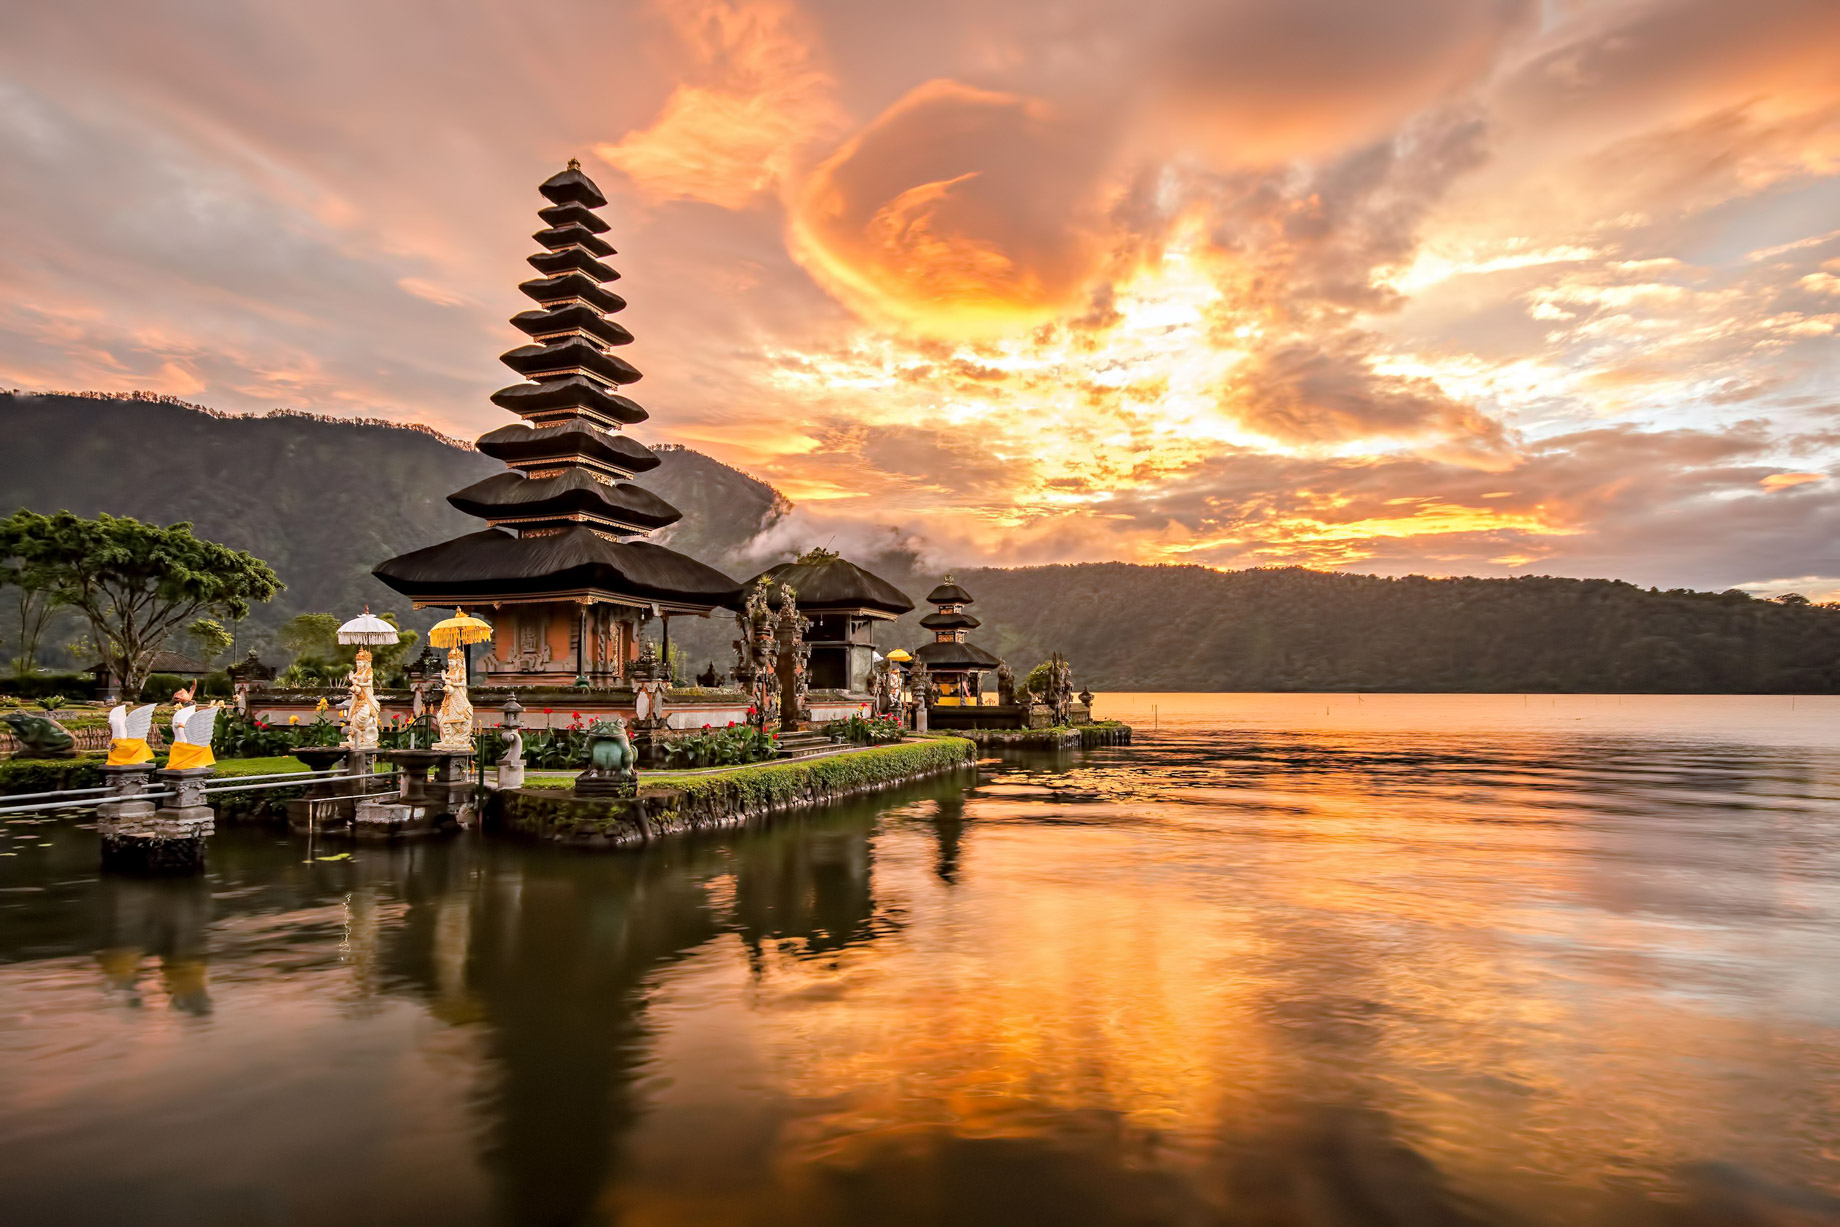 Bali, Indonesia – Best Exotic Locations for Remote Workers to Consider a Second Home